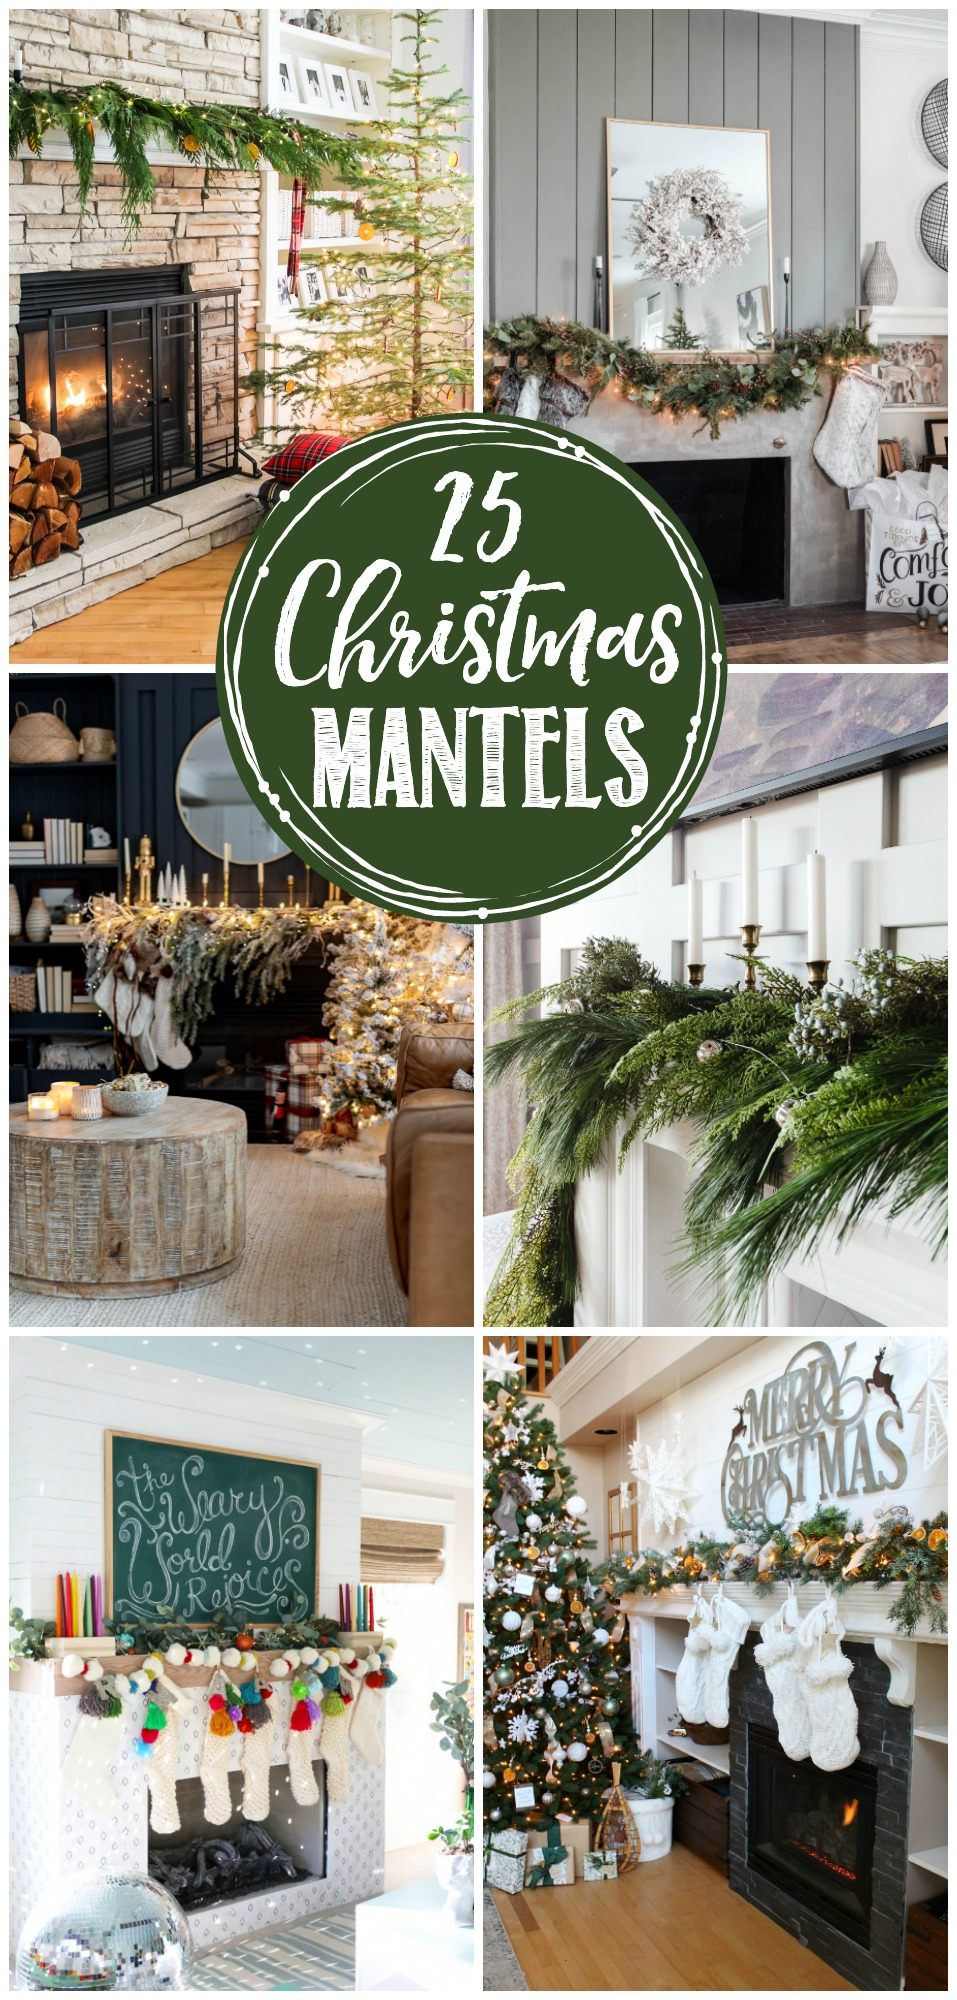 Collage of beautiful Christmas mantels designs.